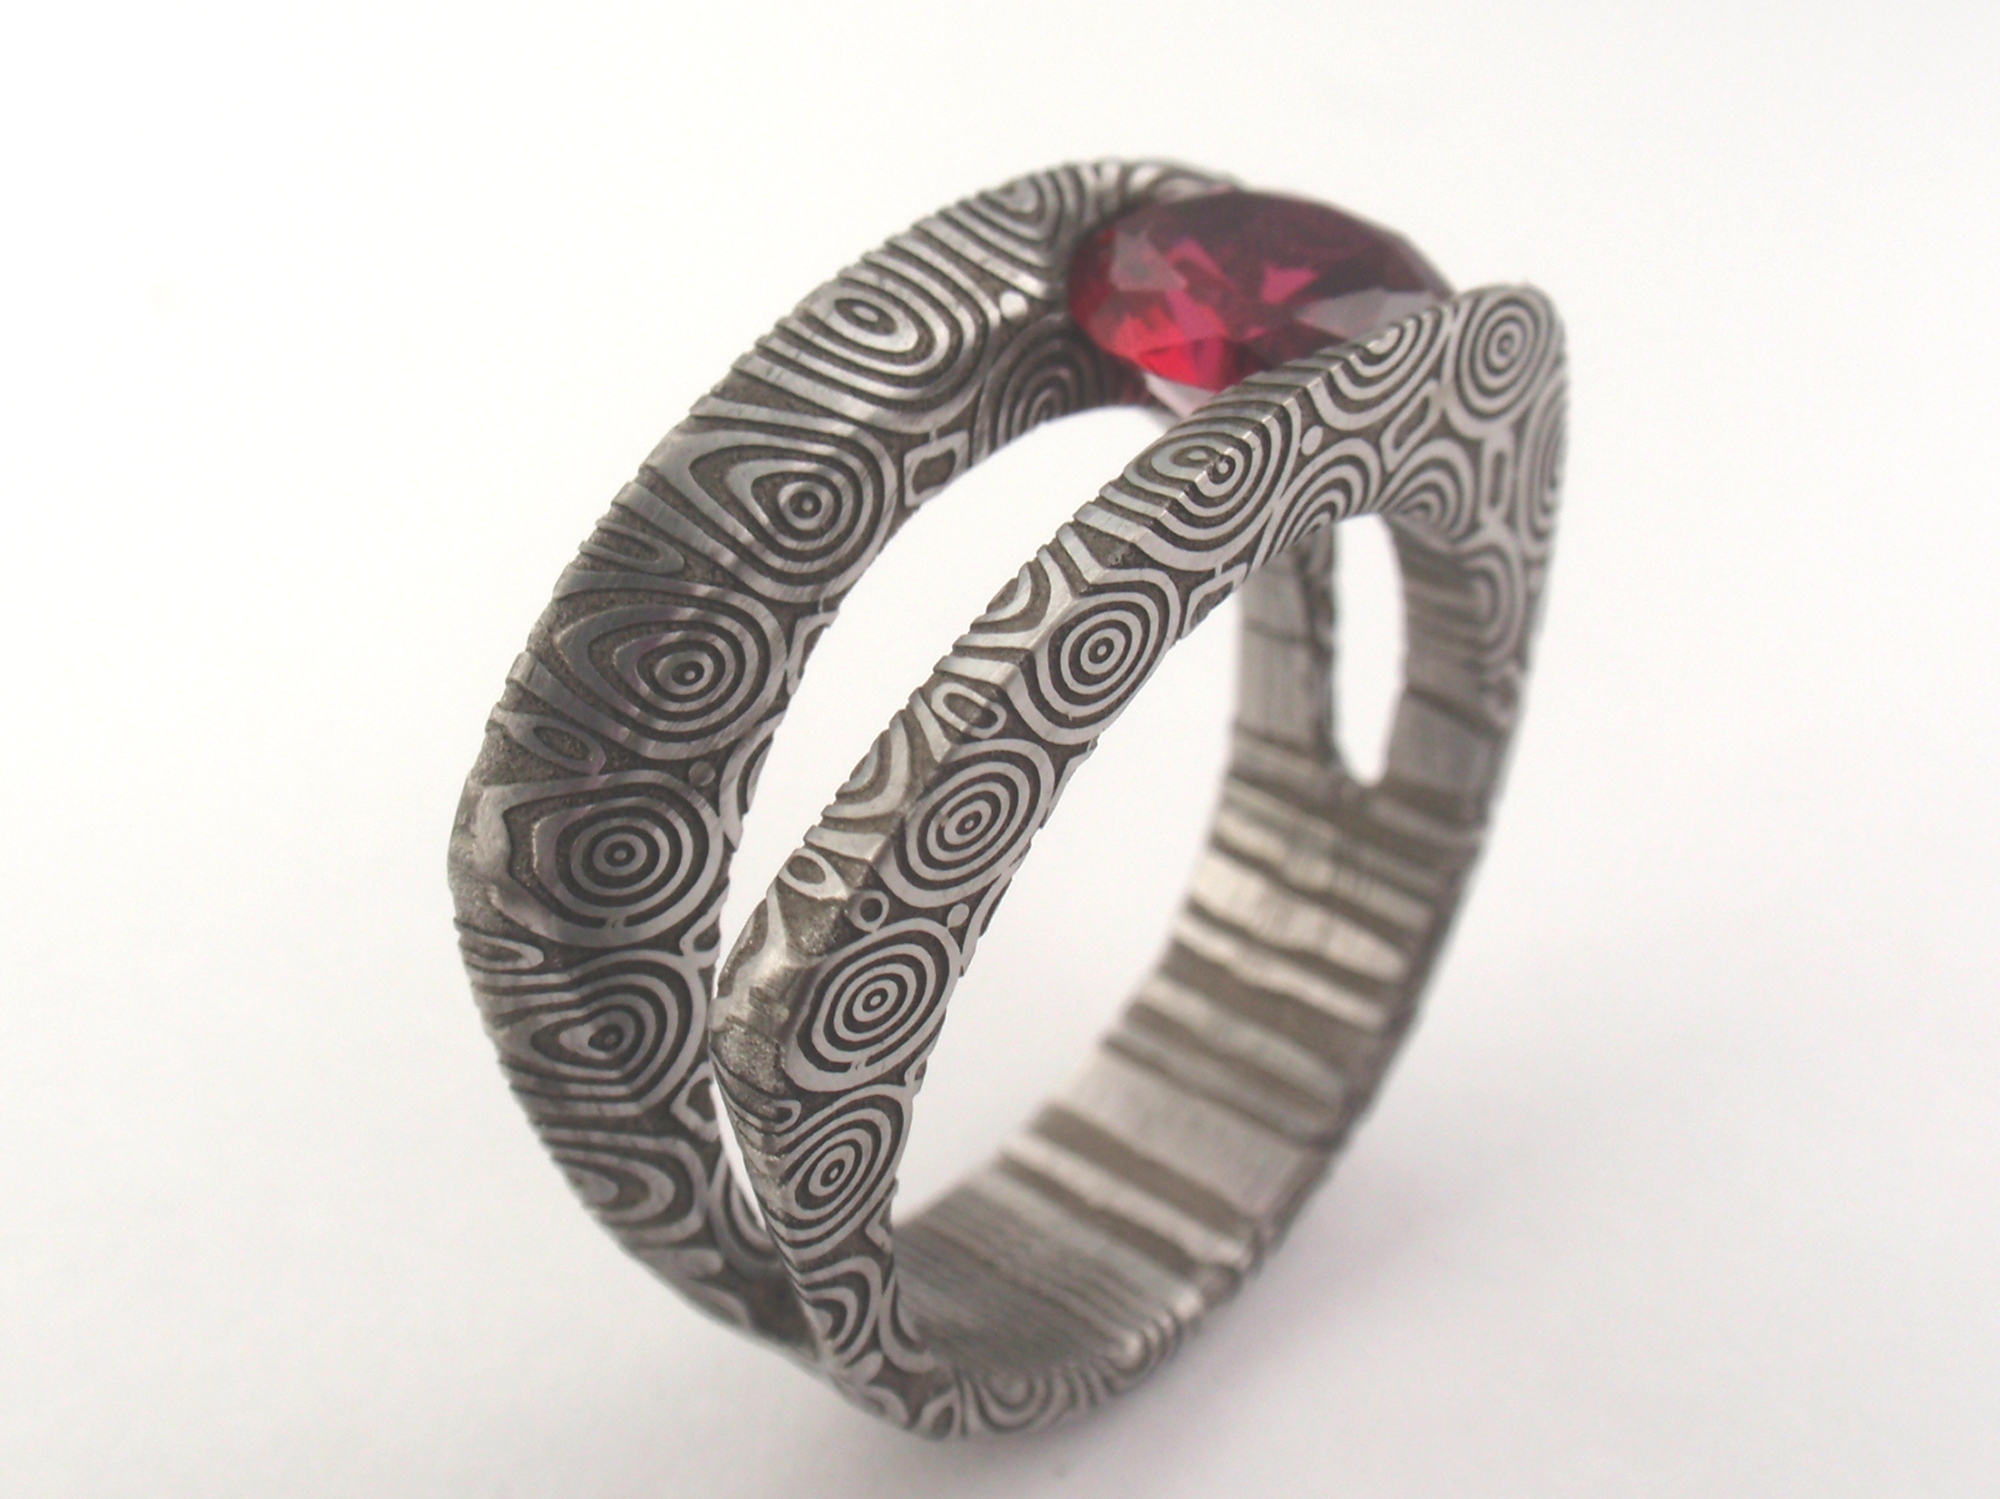 damascus stainless steel with birds eye pattern and ruby damascus wedding band Damascus with Birds Eye pattern and ruby